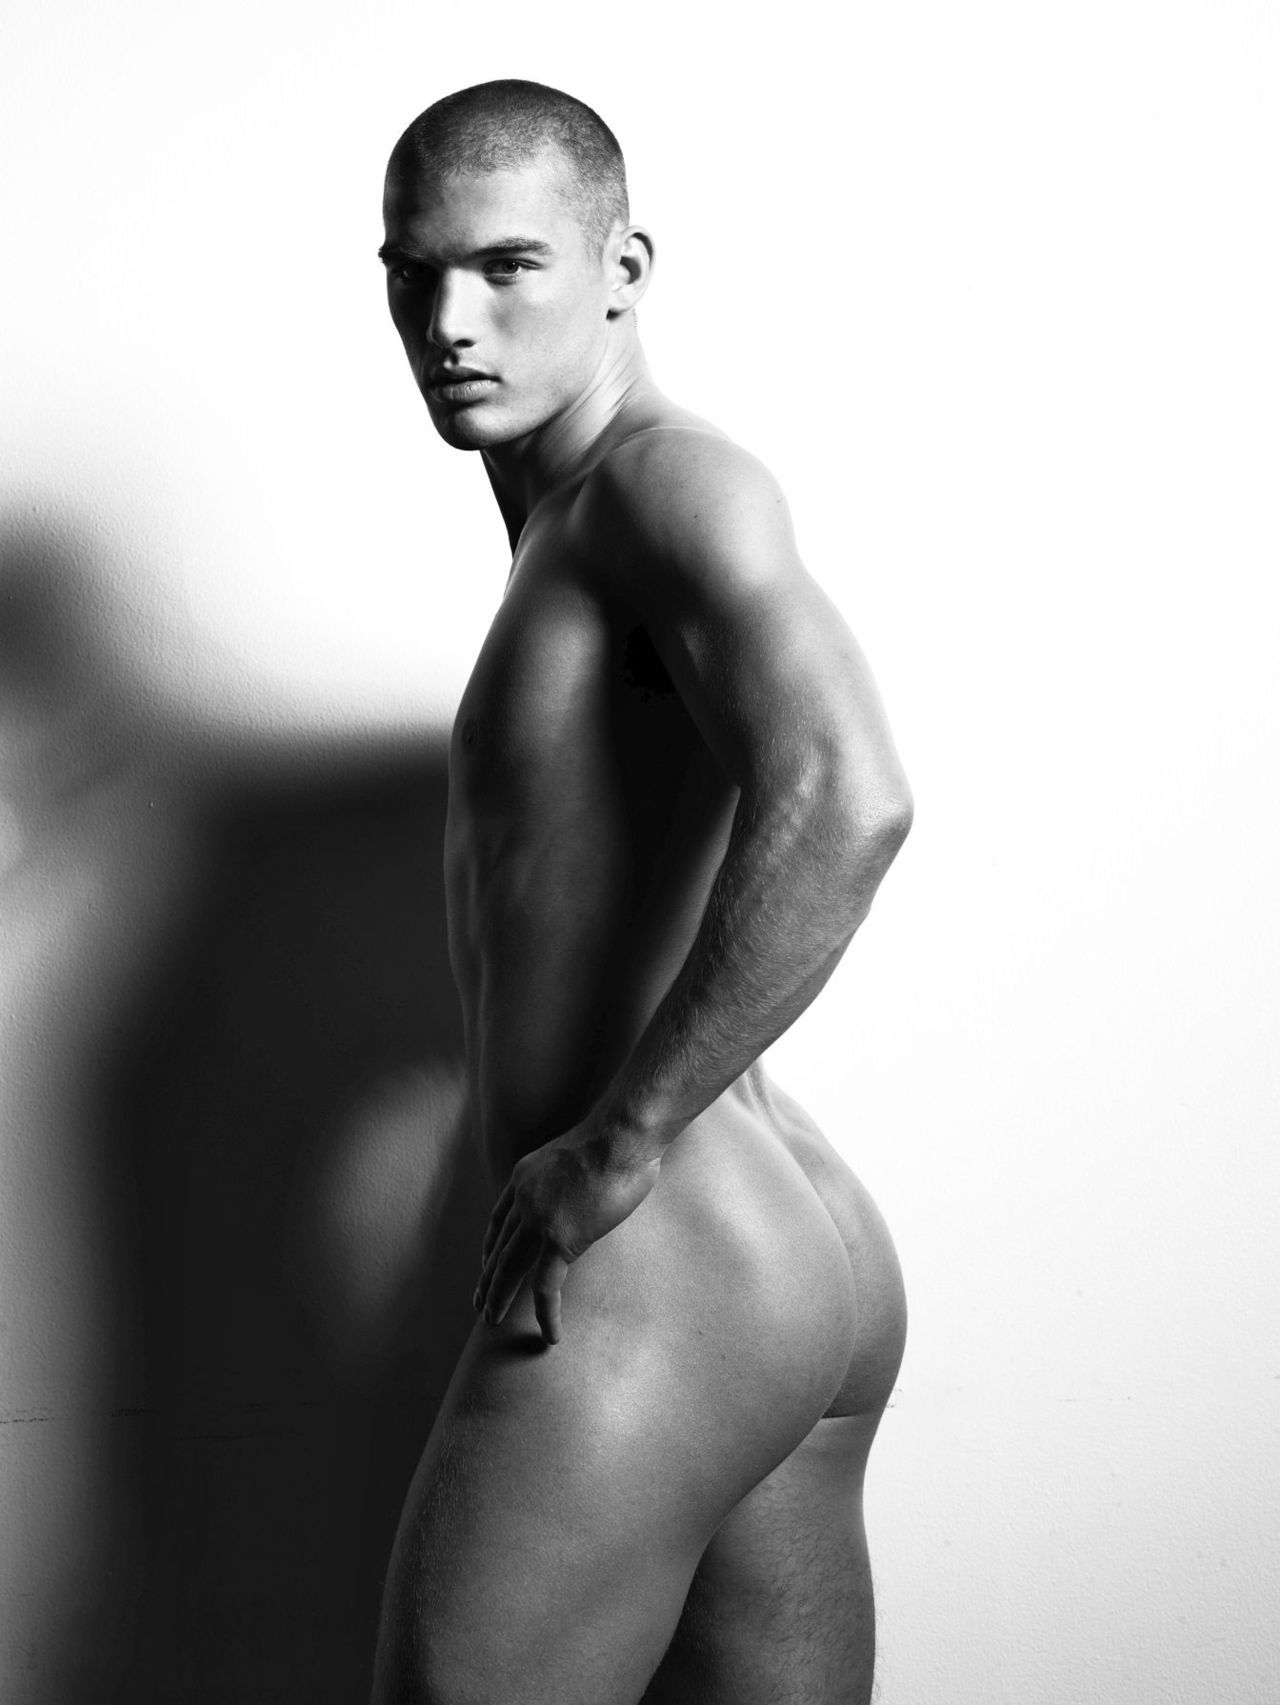 kerry degman bare ass | just fun | pinterest | male models